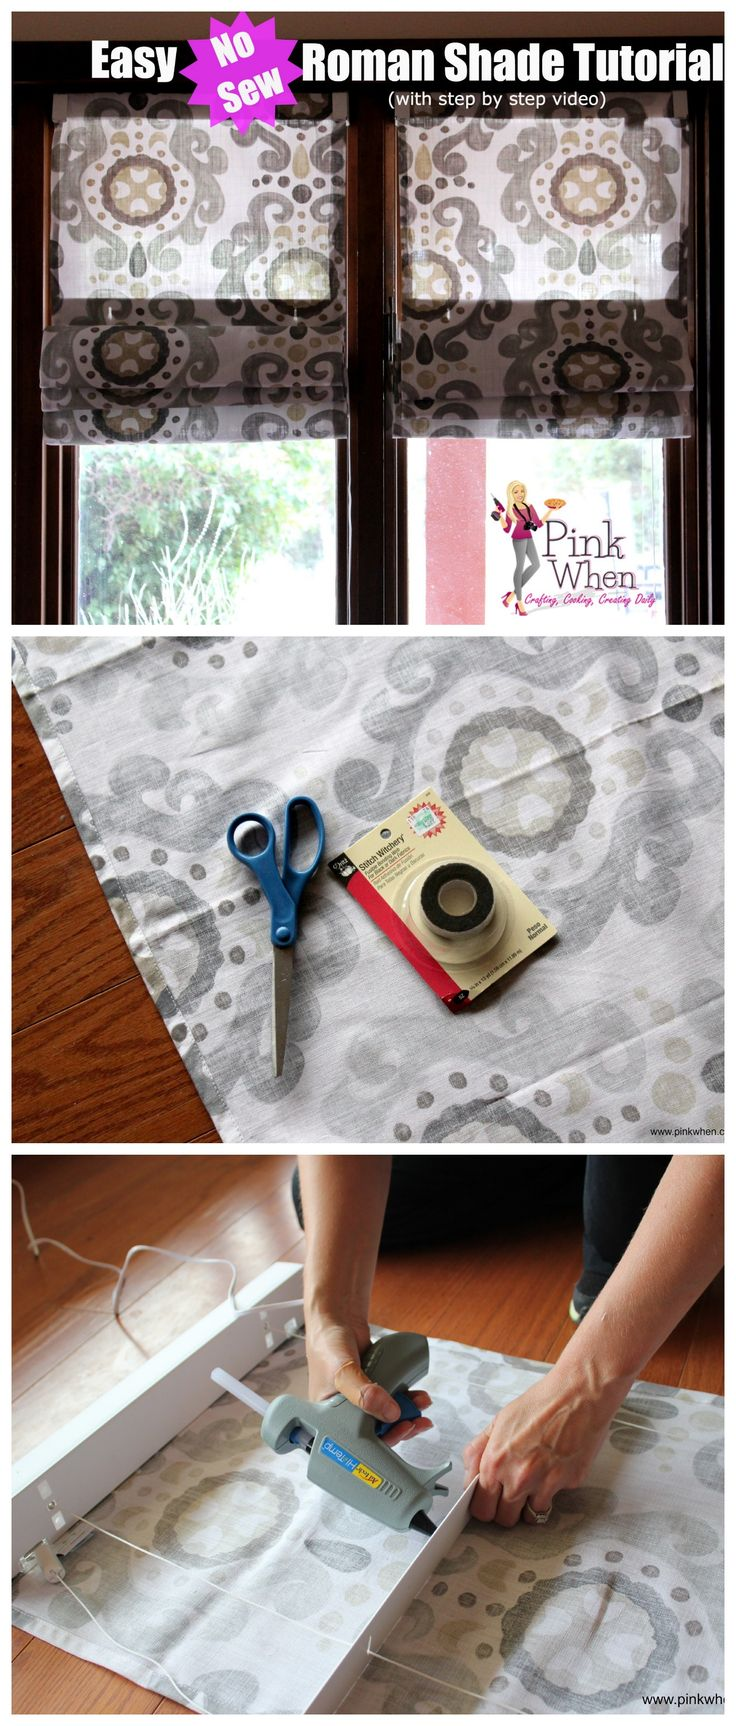 Make beautiful DIY No Sew Roman Shades with this easy to follow video tutorial! #nosew #roman #shade